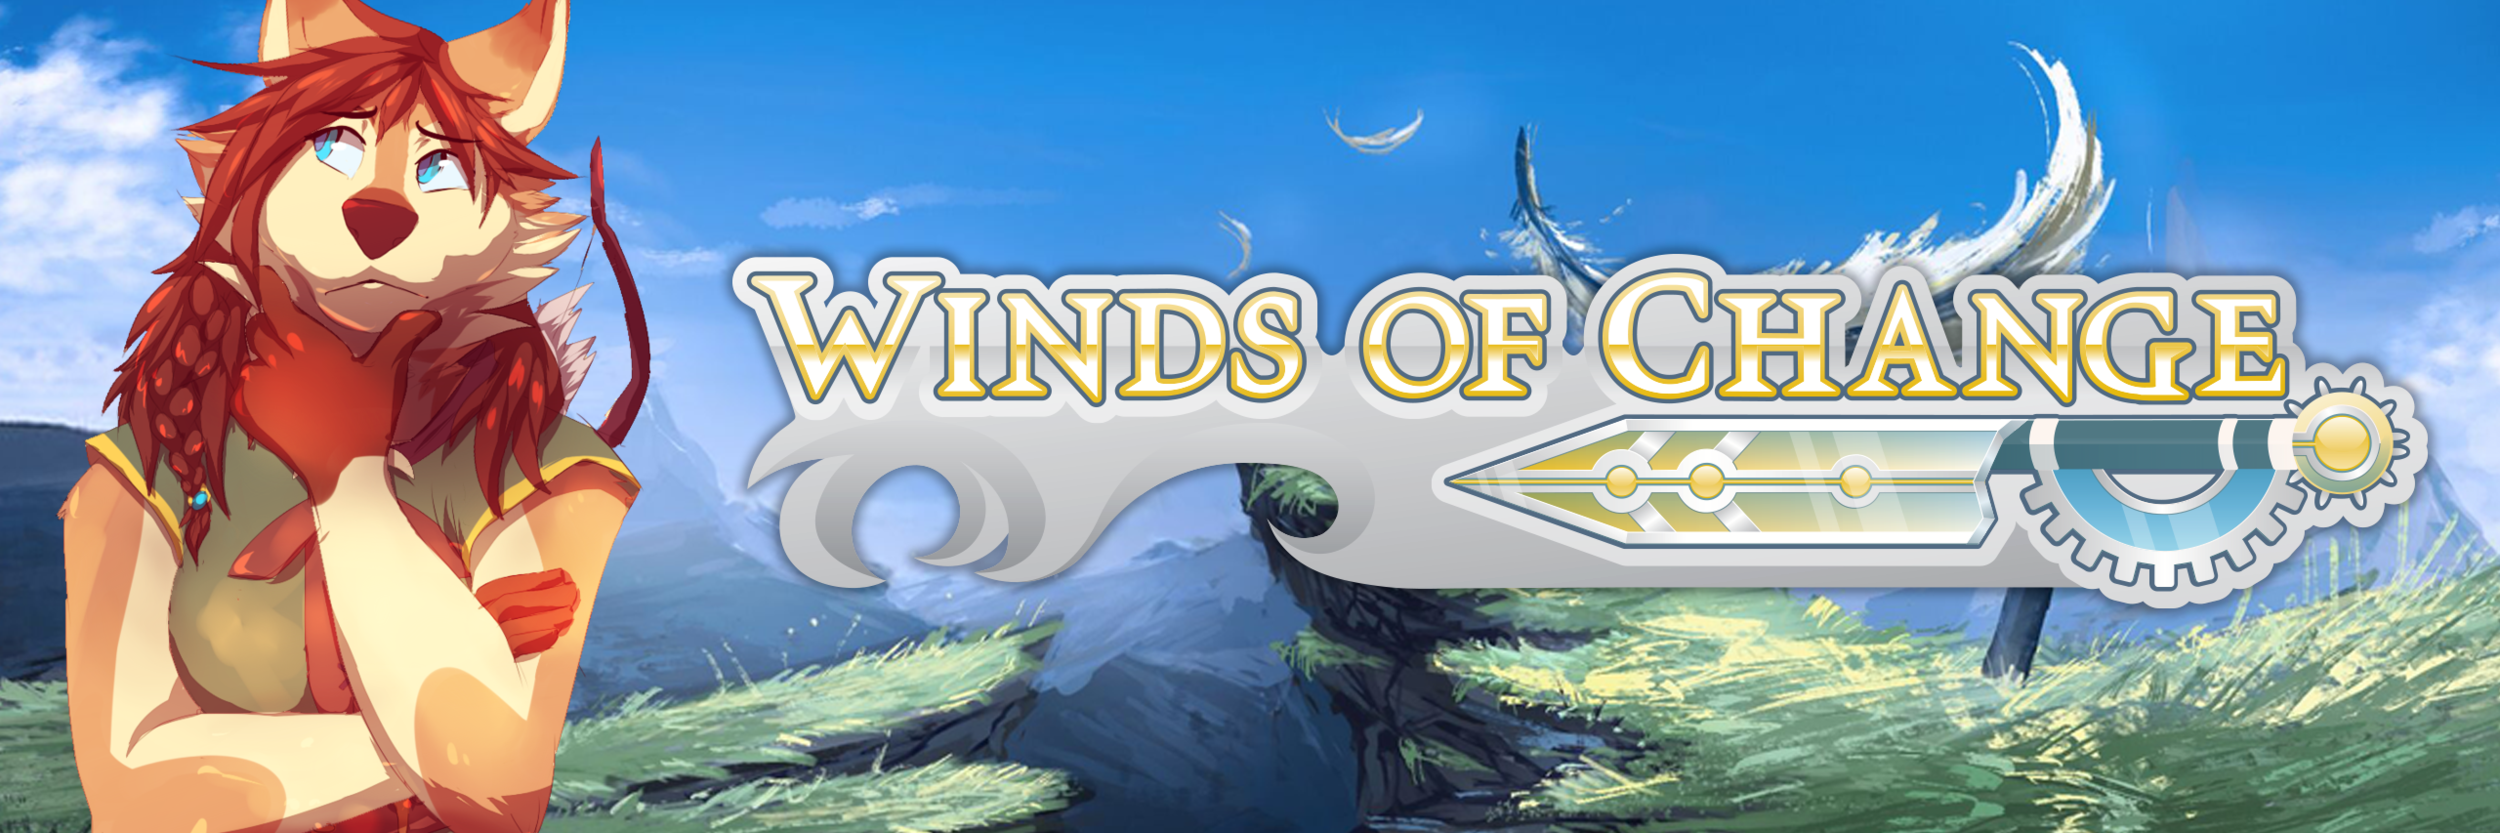 winds.png